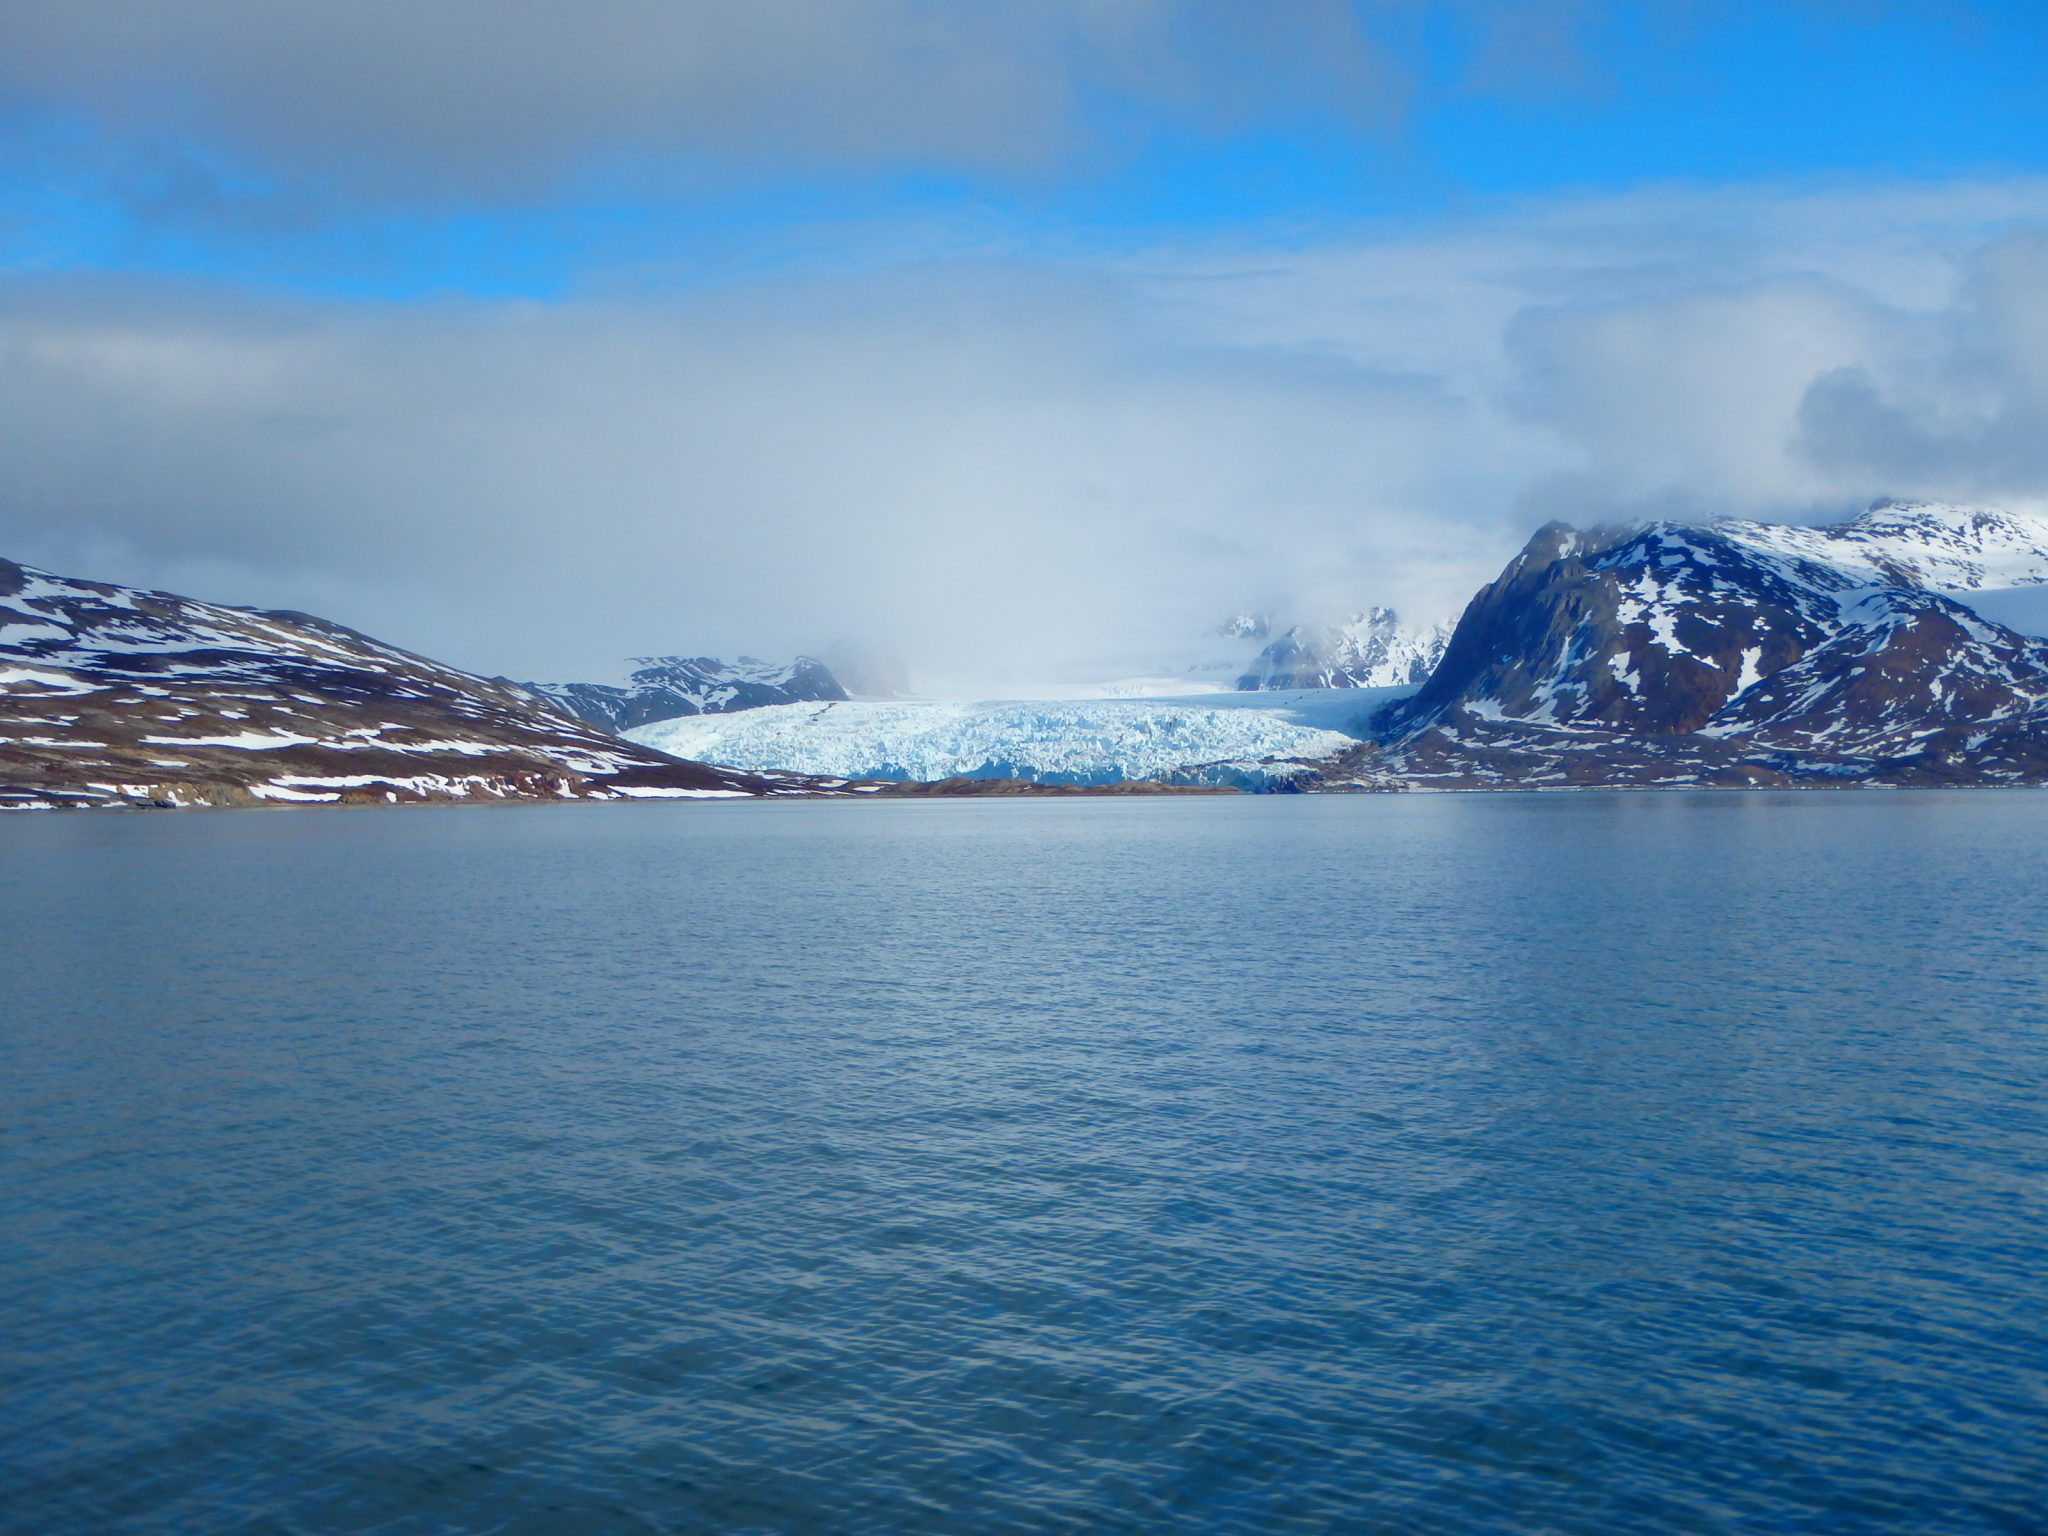 Glacier entering the marine Smeerenburgfjorden, Svalbard | Research Group Loy | APRI